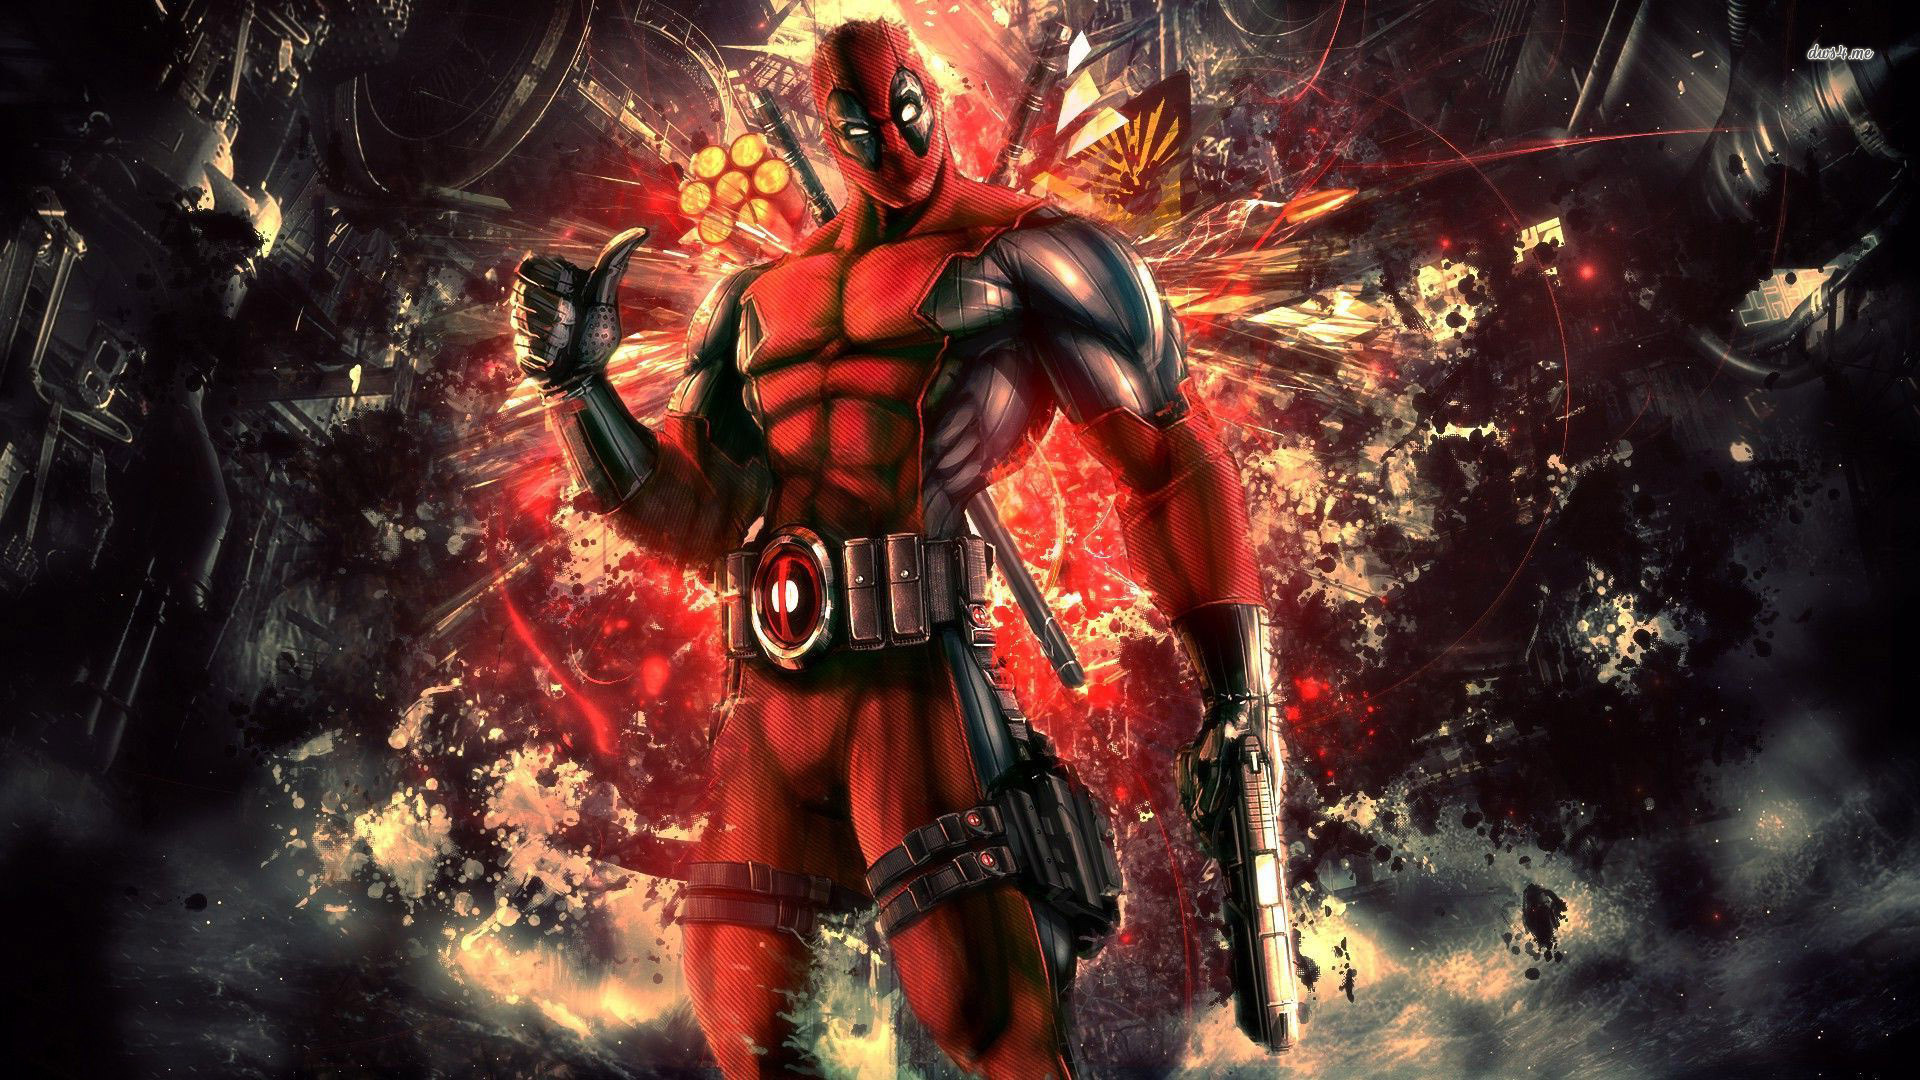 Deadpool HD Wallpapers for desktop download 1920x1080